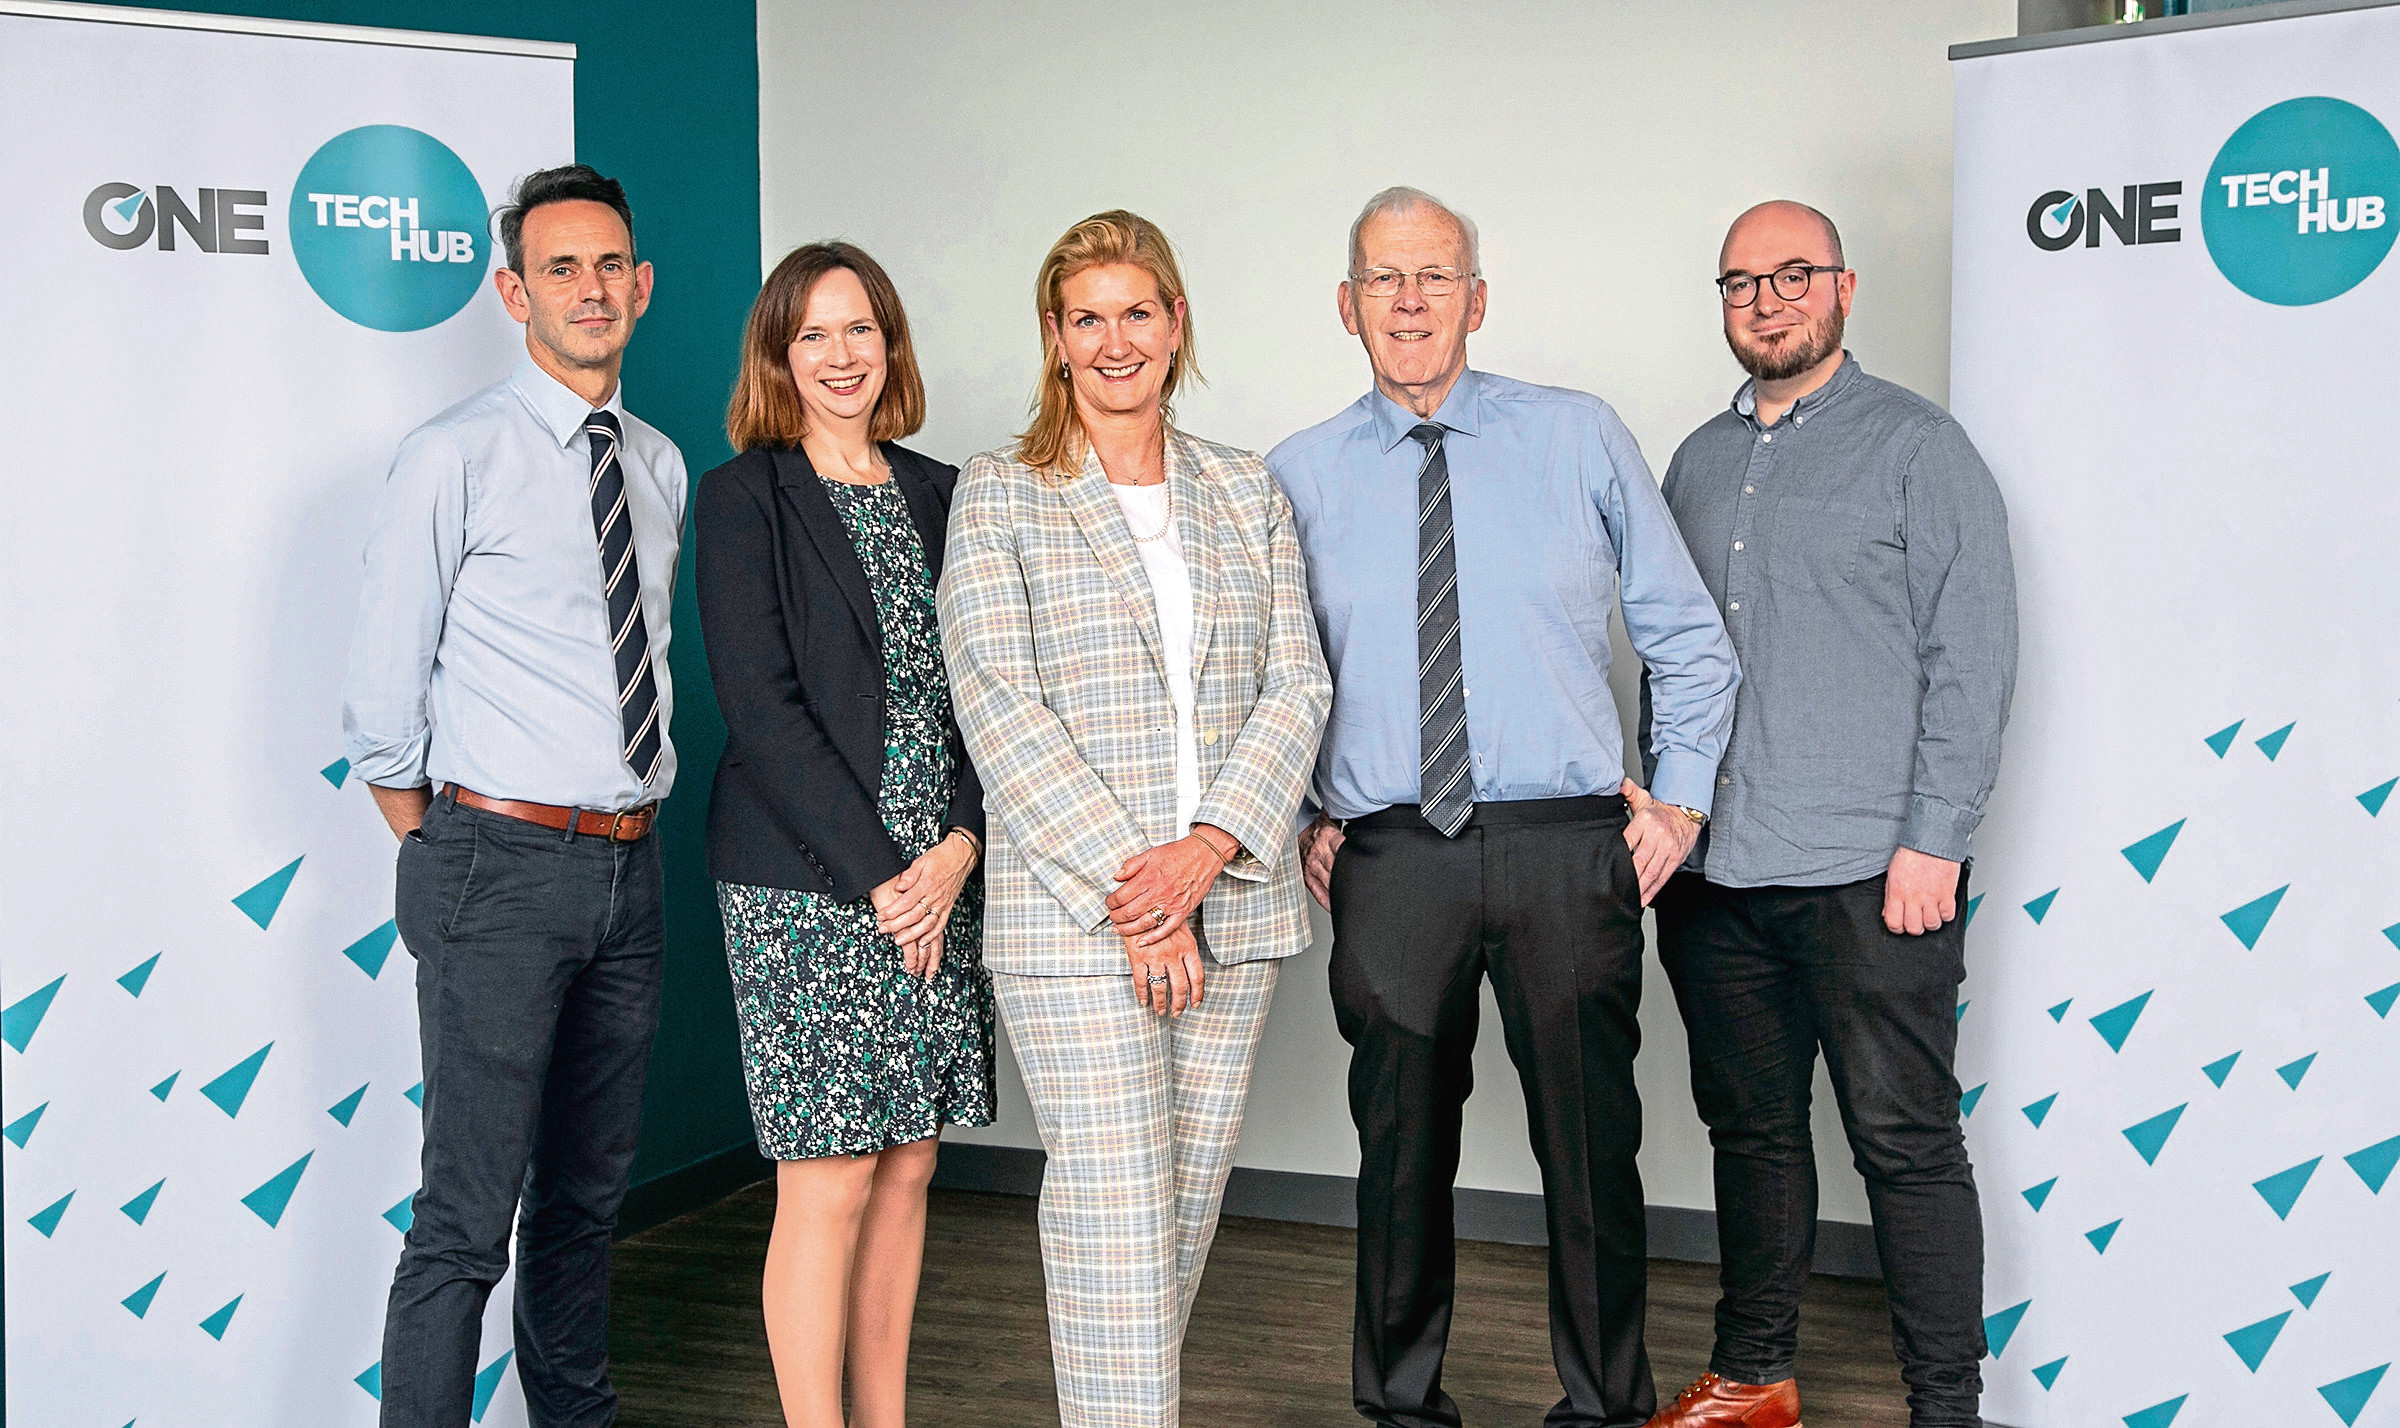 Michael Boniface, Head of ONE CodeBase, Maggie McGinlay, ONE Deputy CEO, Jennifer Craw, ONE CEO, Sir Ian Wood KT GBE, Chair of ONE and ONE D&E, Stephen Coleman OBE, CEO and co-founder of CodeBase.